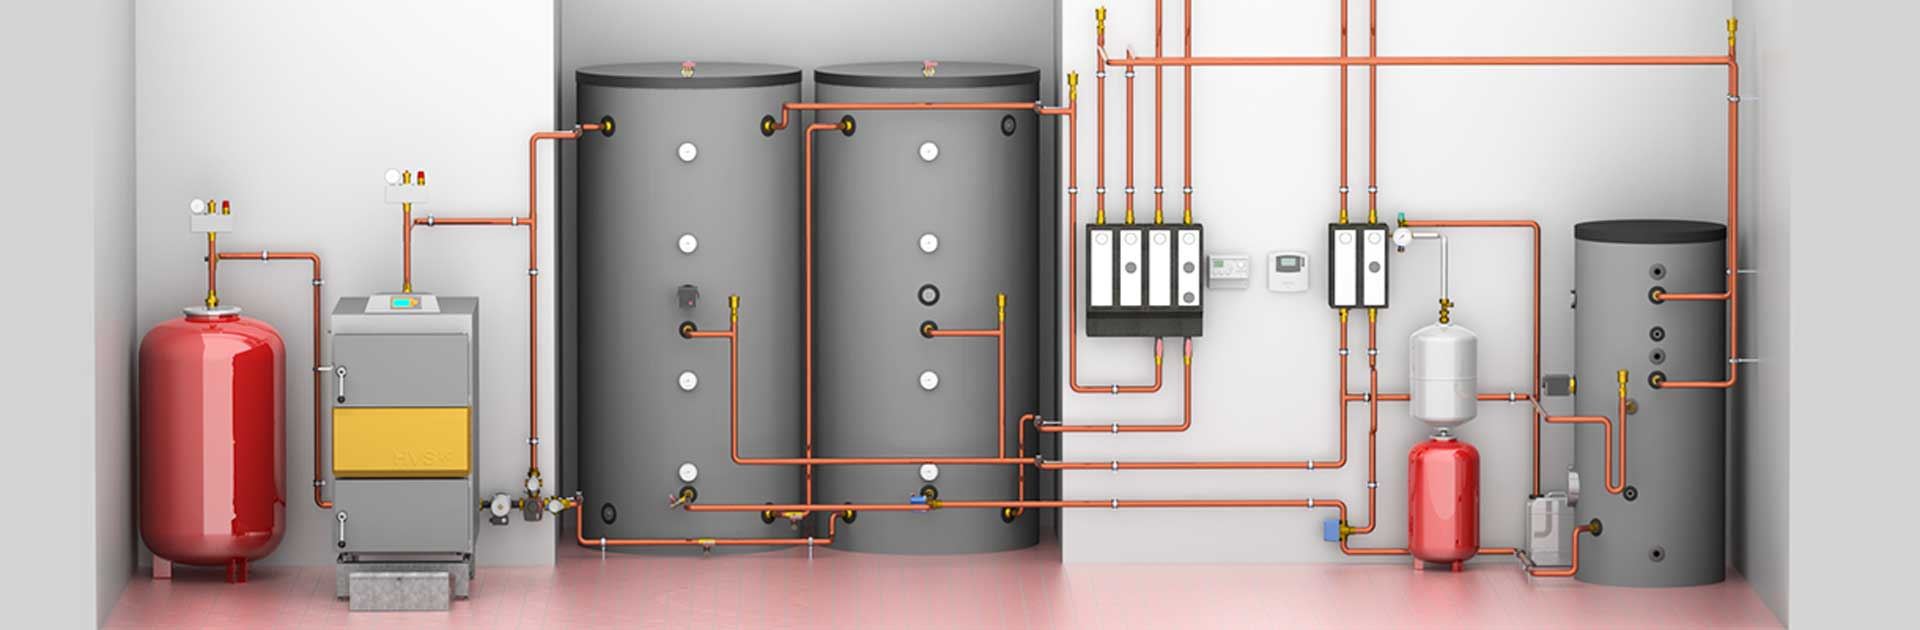 hight resolution of heating system example